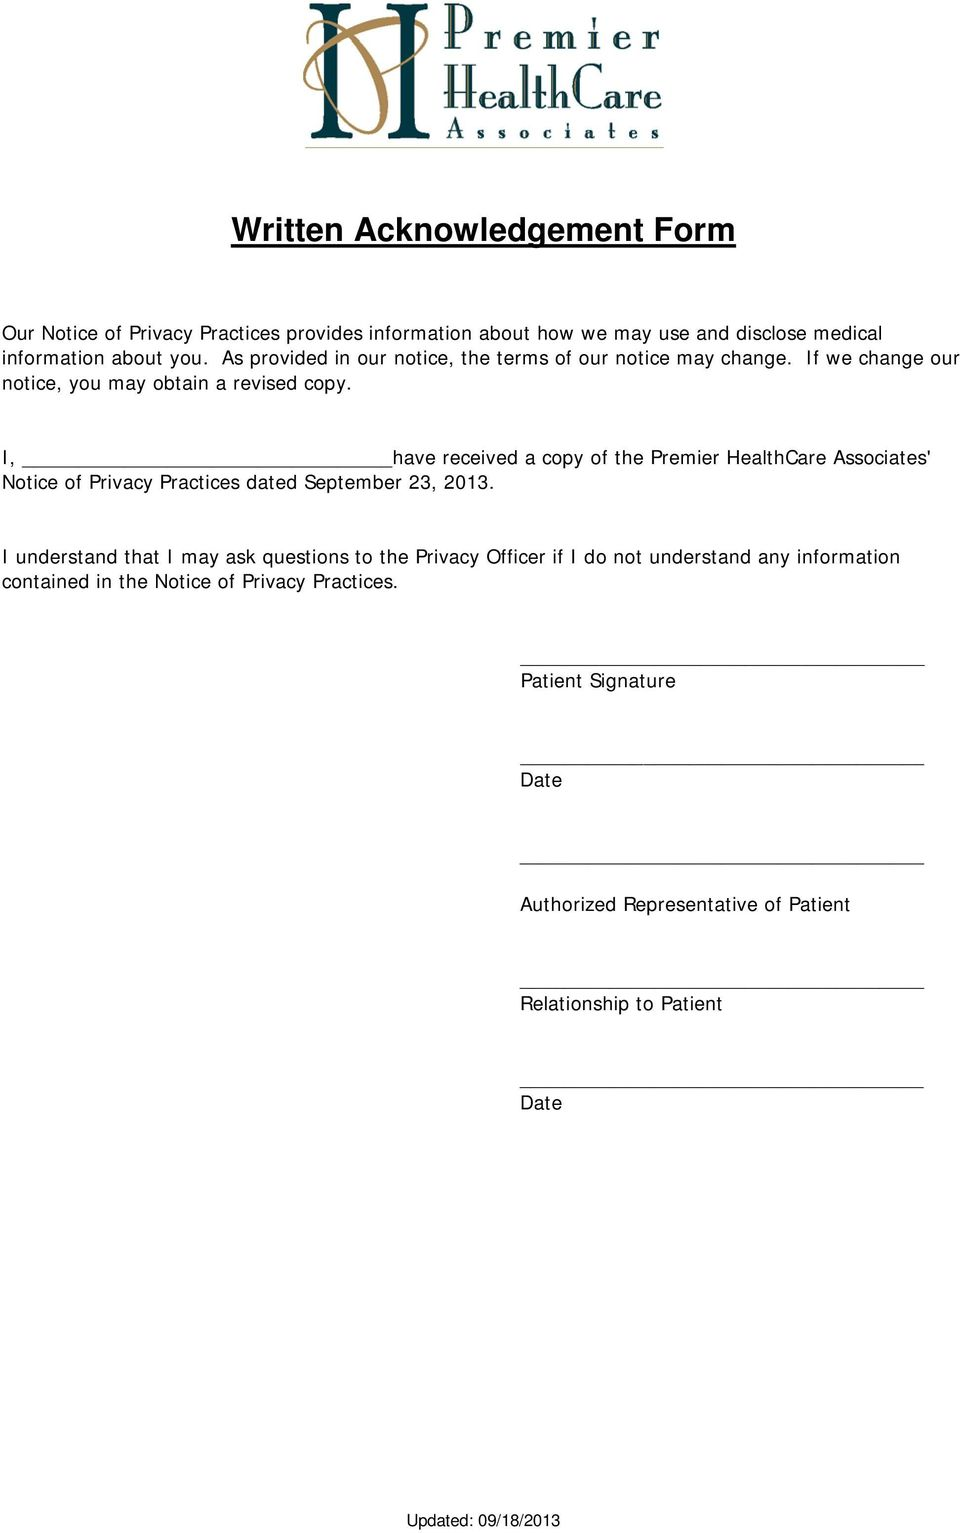 I, have received a copy of the Premier HealthCare Associates' Notice of Privacy Practices dated September 23, 2013.